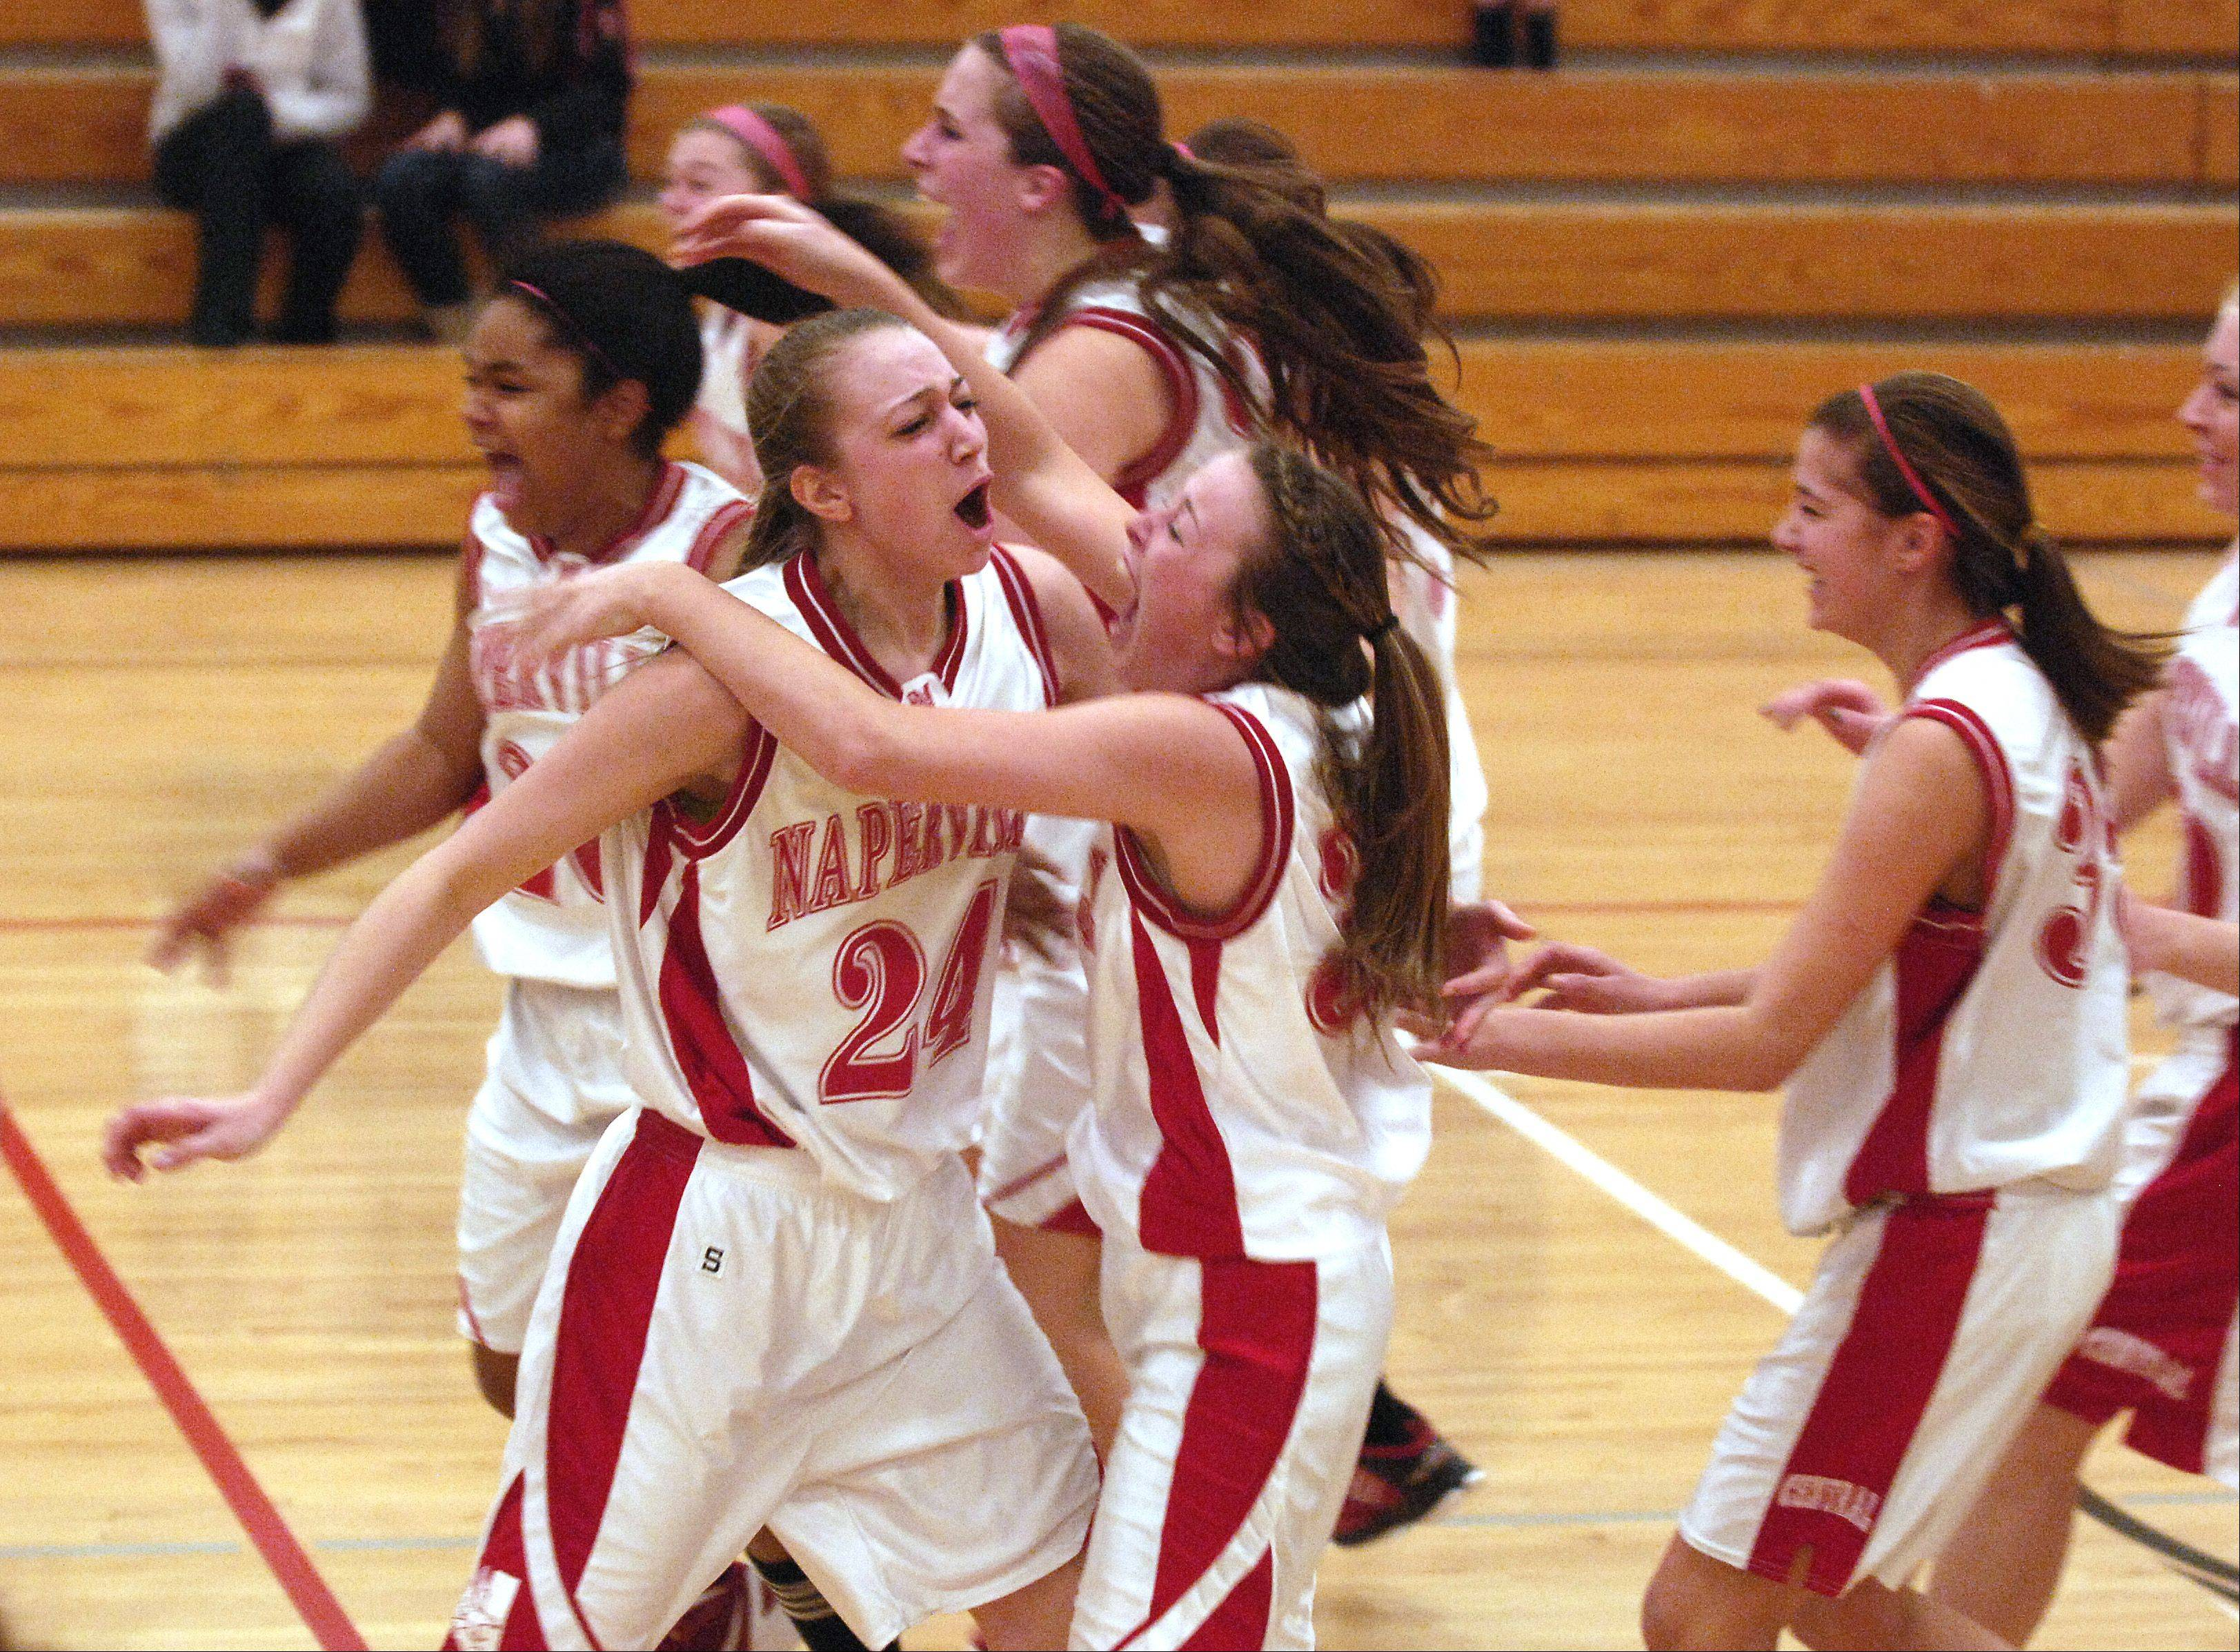 Naperville Central celebrates their wins of the girls Class 4A regional final basketball game over Benet Academy 44-42, Thursday in Lisle.